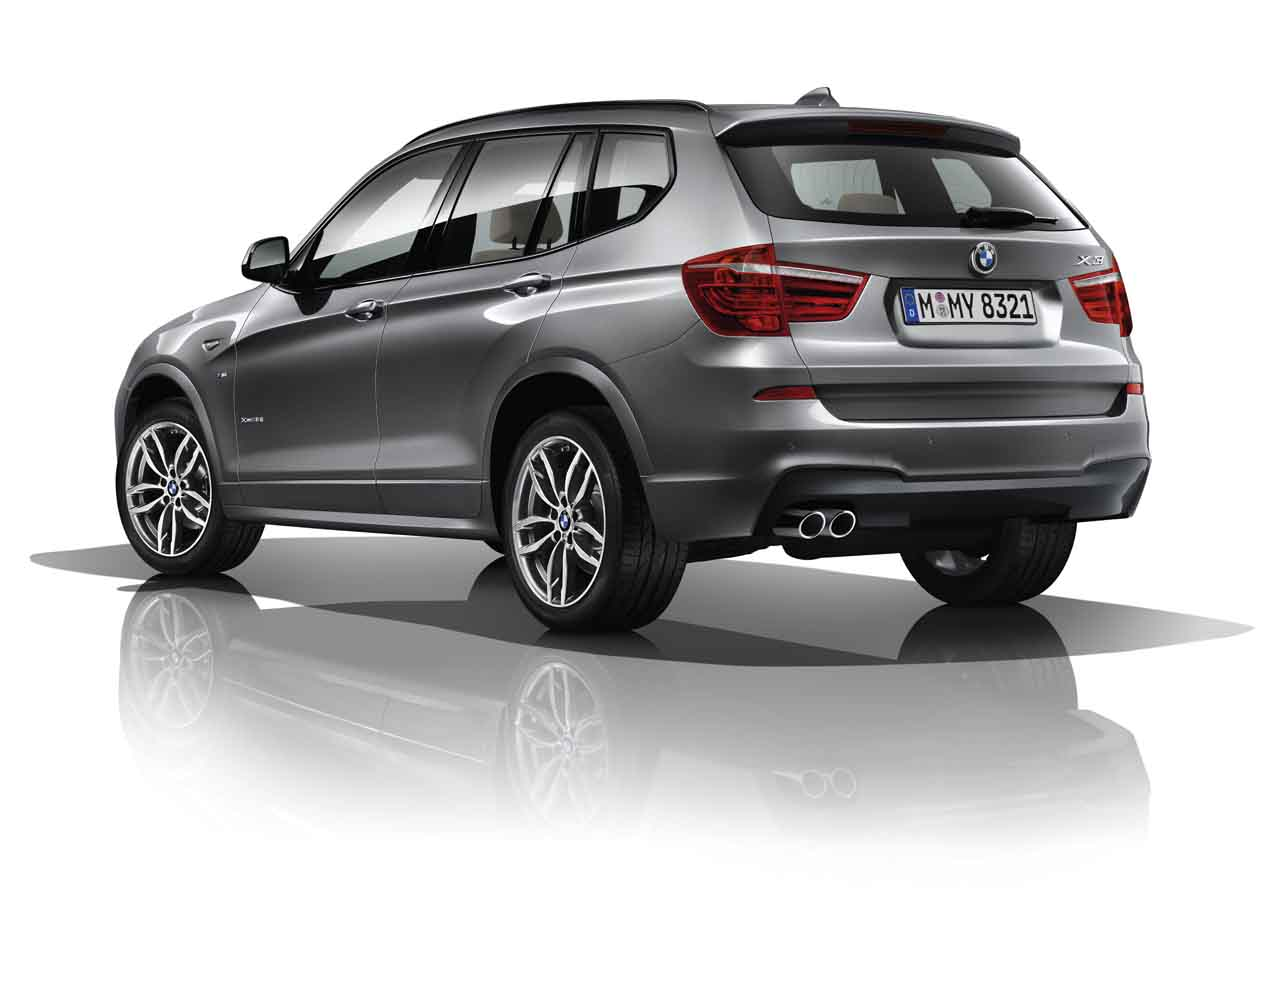 bmw x3 xdrive30d m sport launched in india price rs 60 lakh. Black Bedroom Furniture Sets. Home Design Ideas